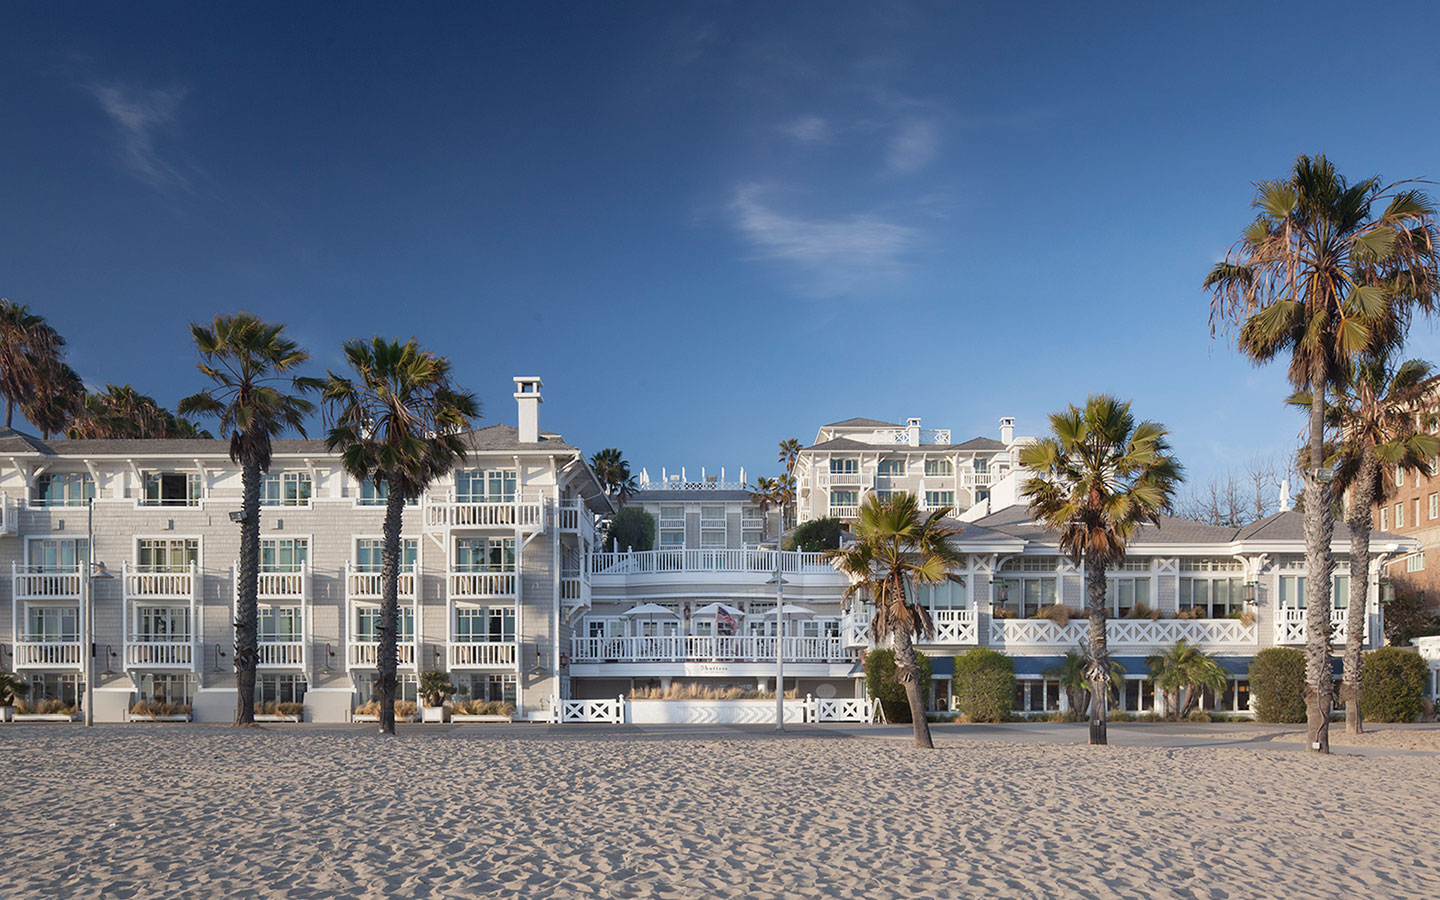 Santa Monica Hotel Luxury Beach